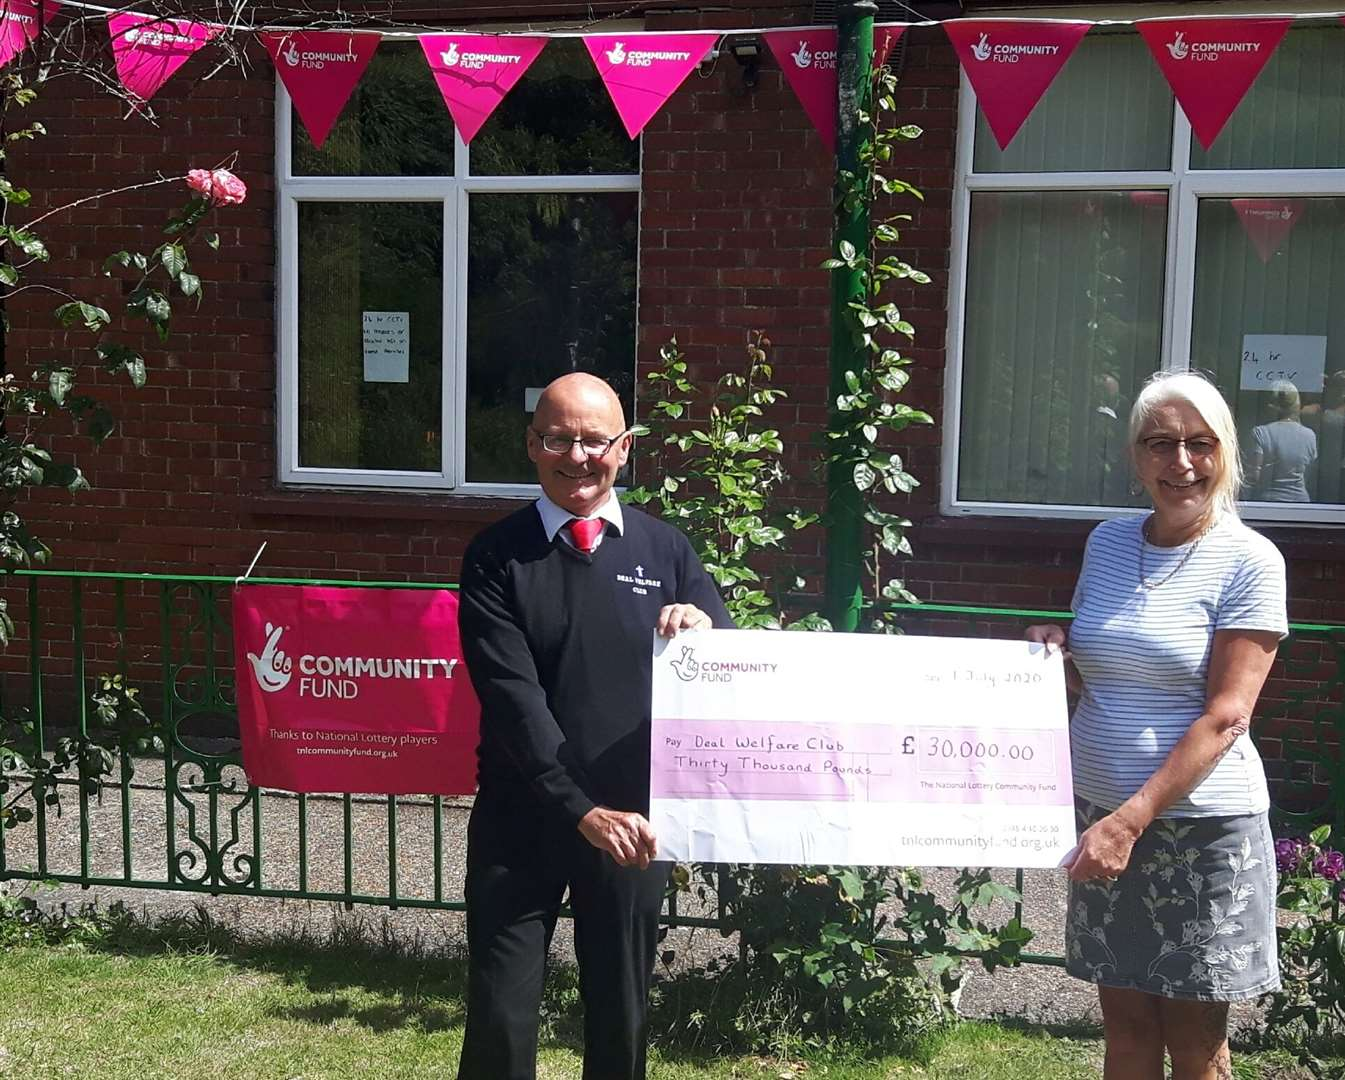 Deal Welfare Club chairman Lee Bowman with treasurer Diane Ashmore with the £30,000 cheque from the National Lottery to pay for meals for financially vulnerable families